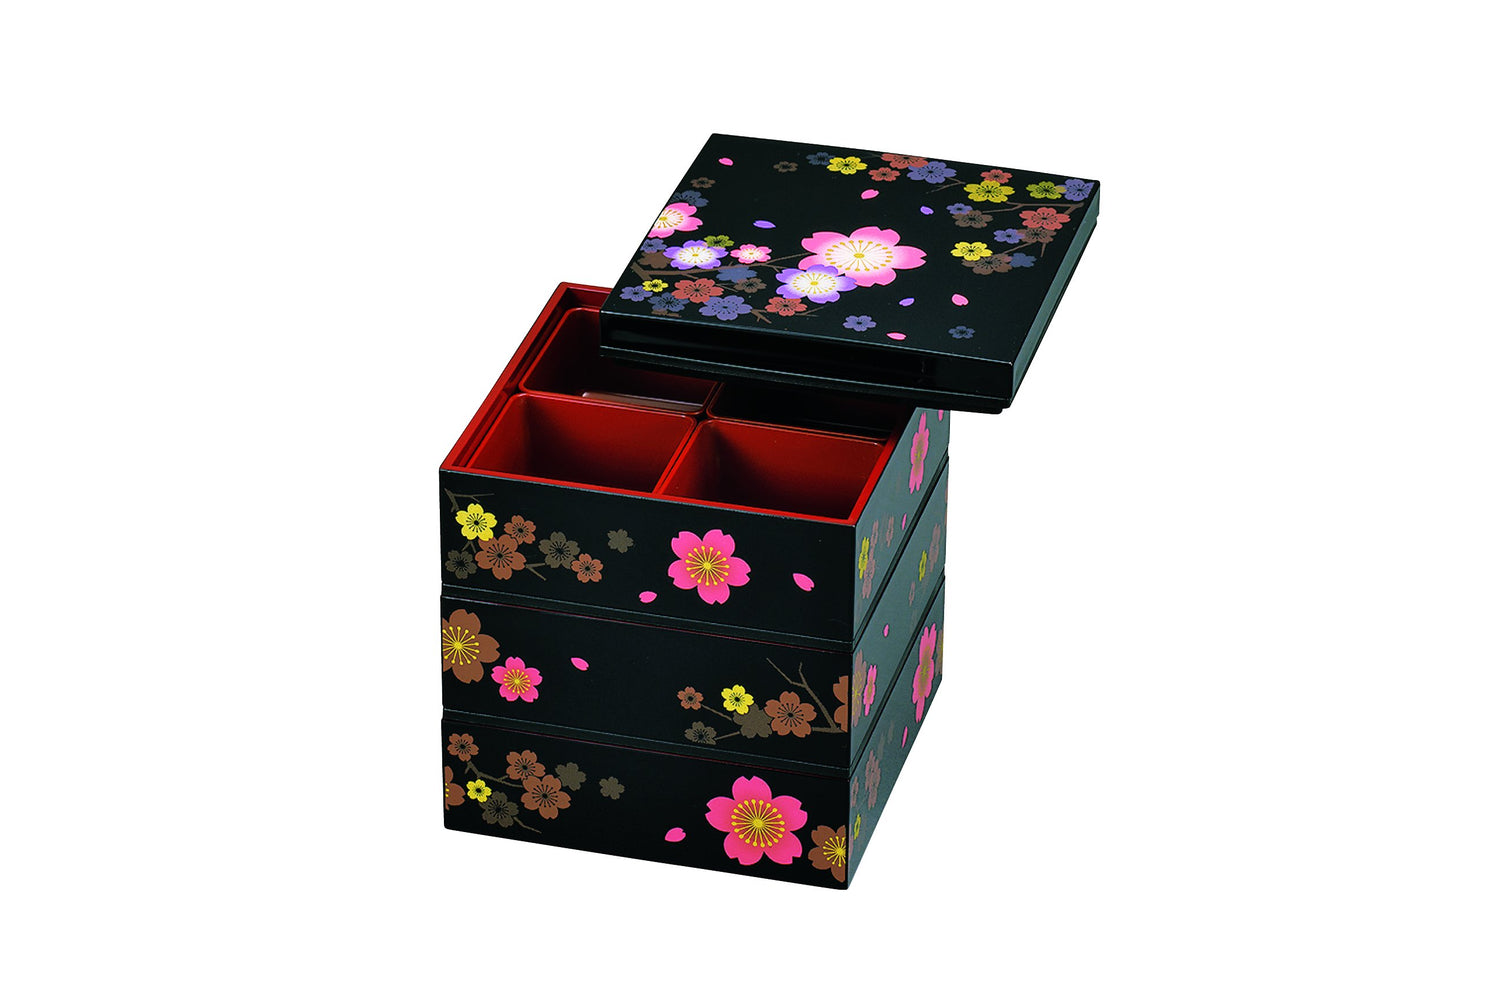 Colorful Sakura Three Tier Picnic Bento Box by Hakoya - Bento&co Japanese Bento Lunch Boxes and Kitchenware Specialists